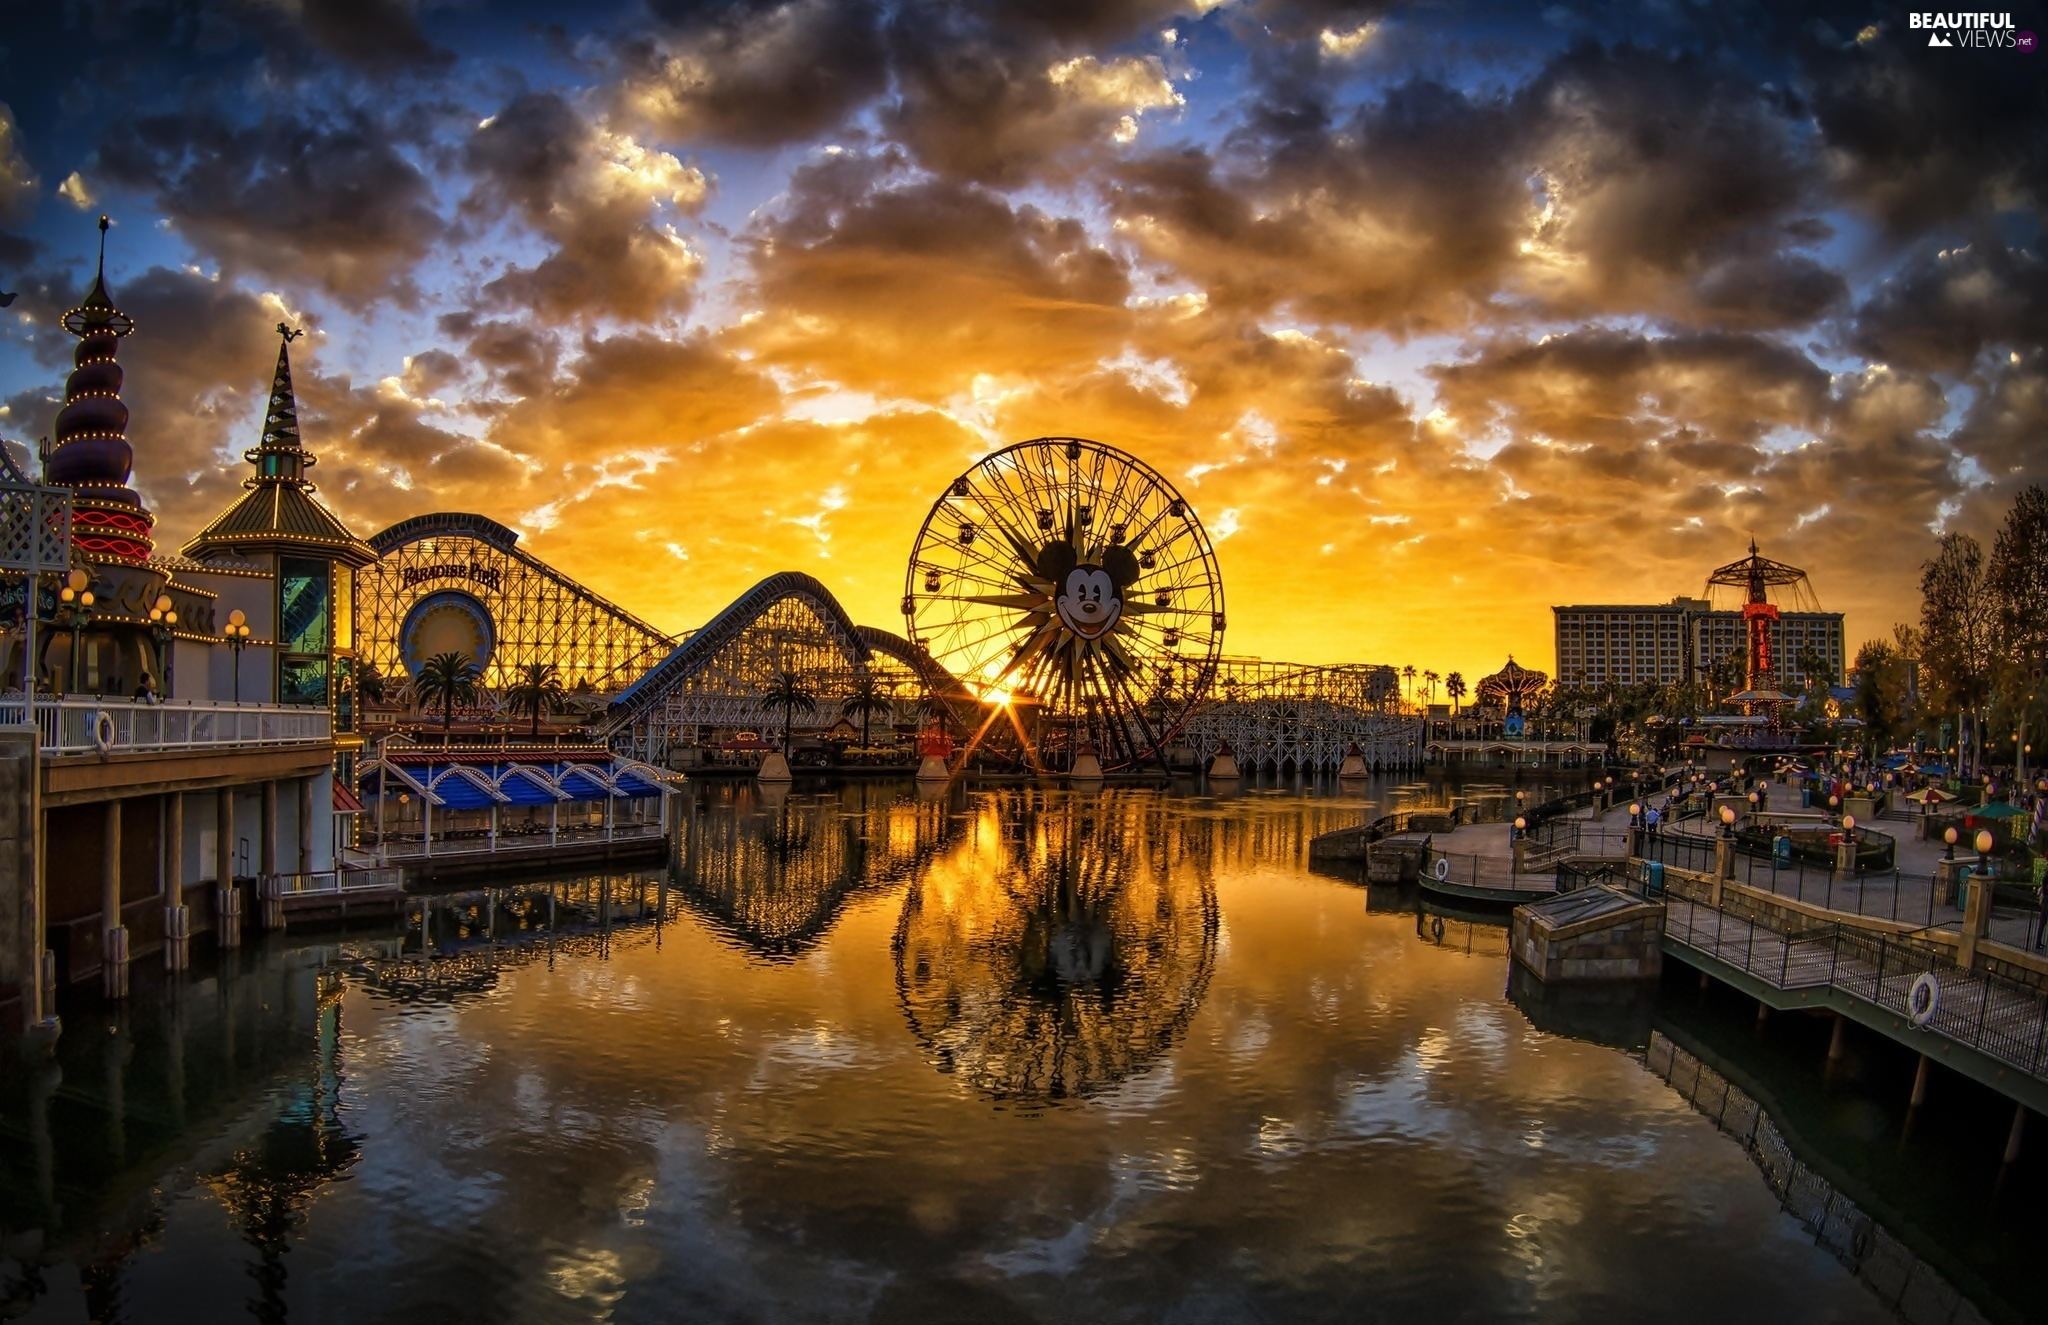 Disneyland, California, River, Anaheim, The United States, Ferris Wheel, Great Sunsets